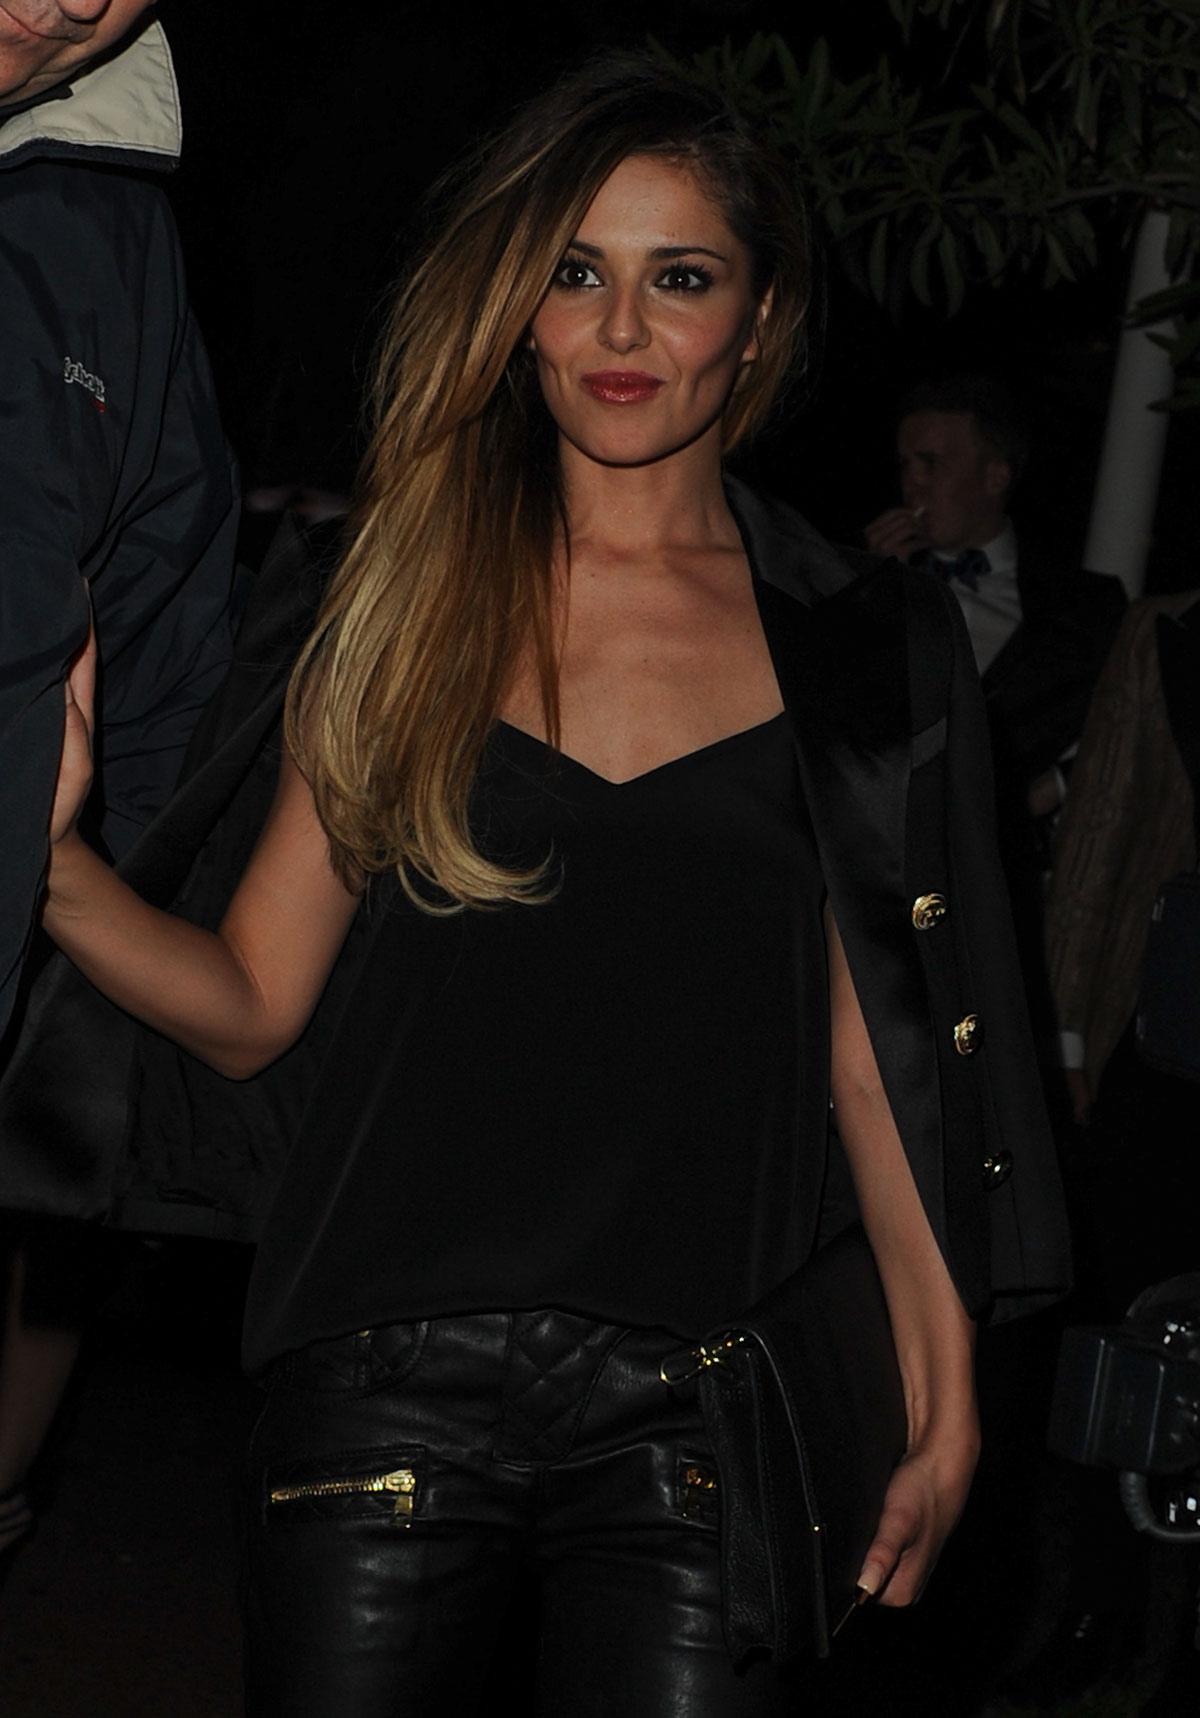 Cheryl Cole leaves Cosy Box in Cannes